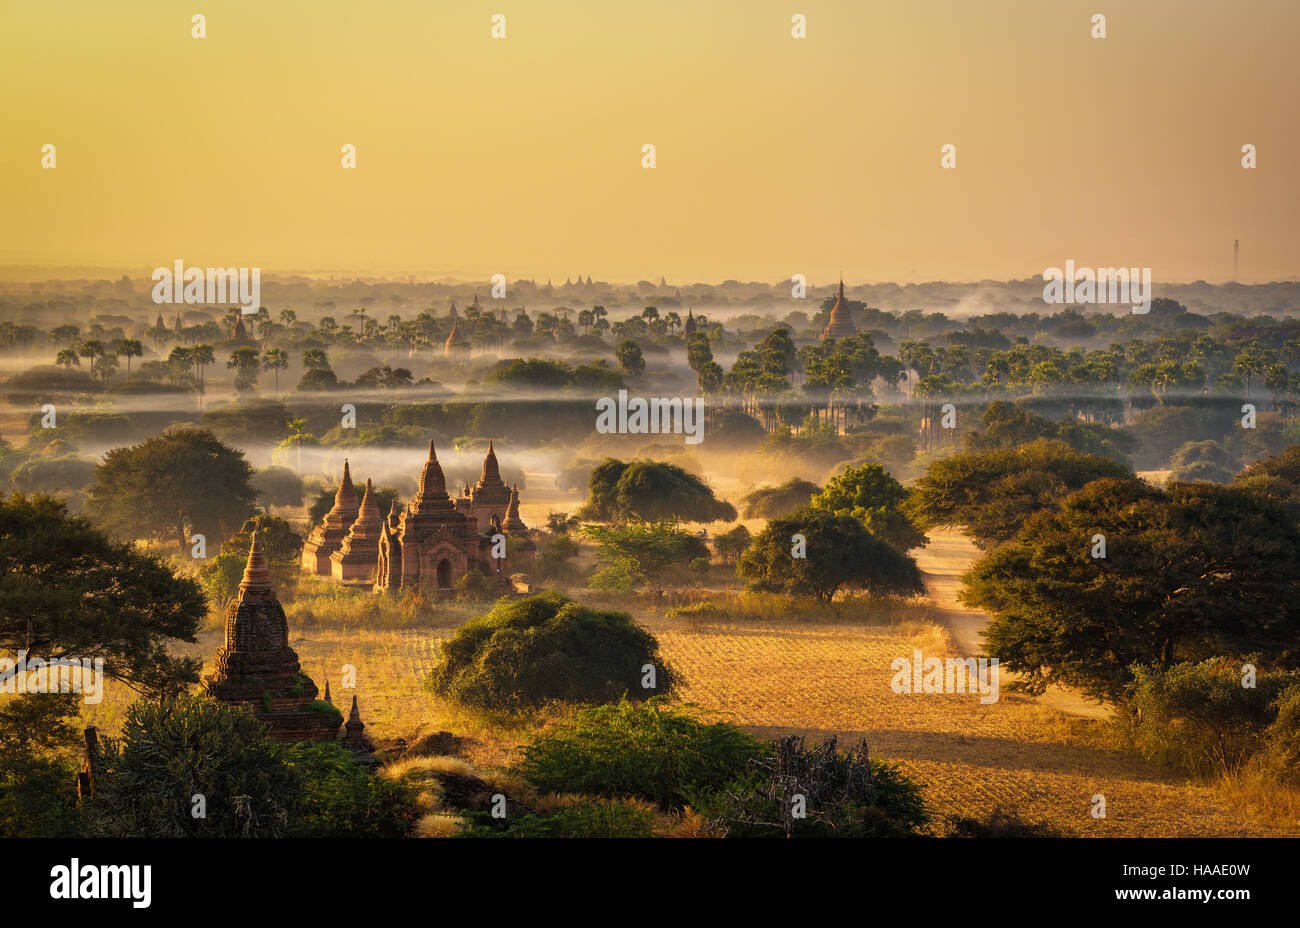 Sunrise above Bagan in Myanmar. Bagan is an ancient city with thousands of historic buddhist temples and stupas. - Stock Image